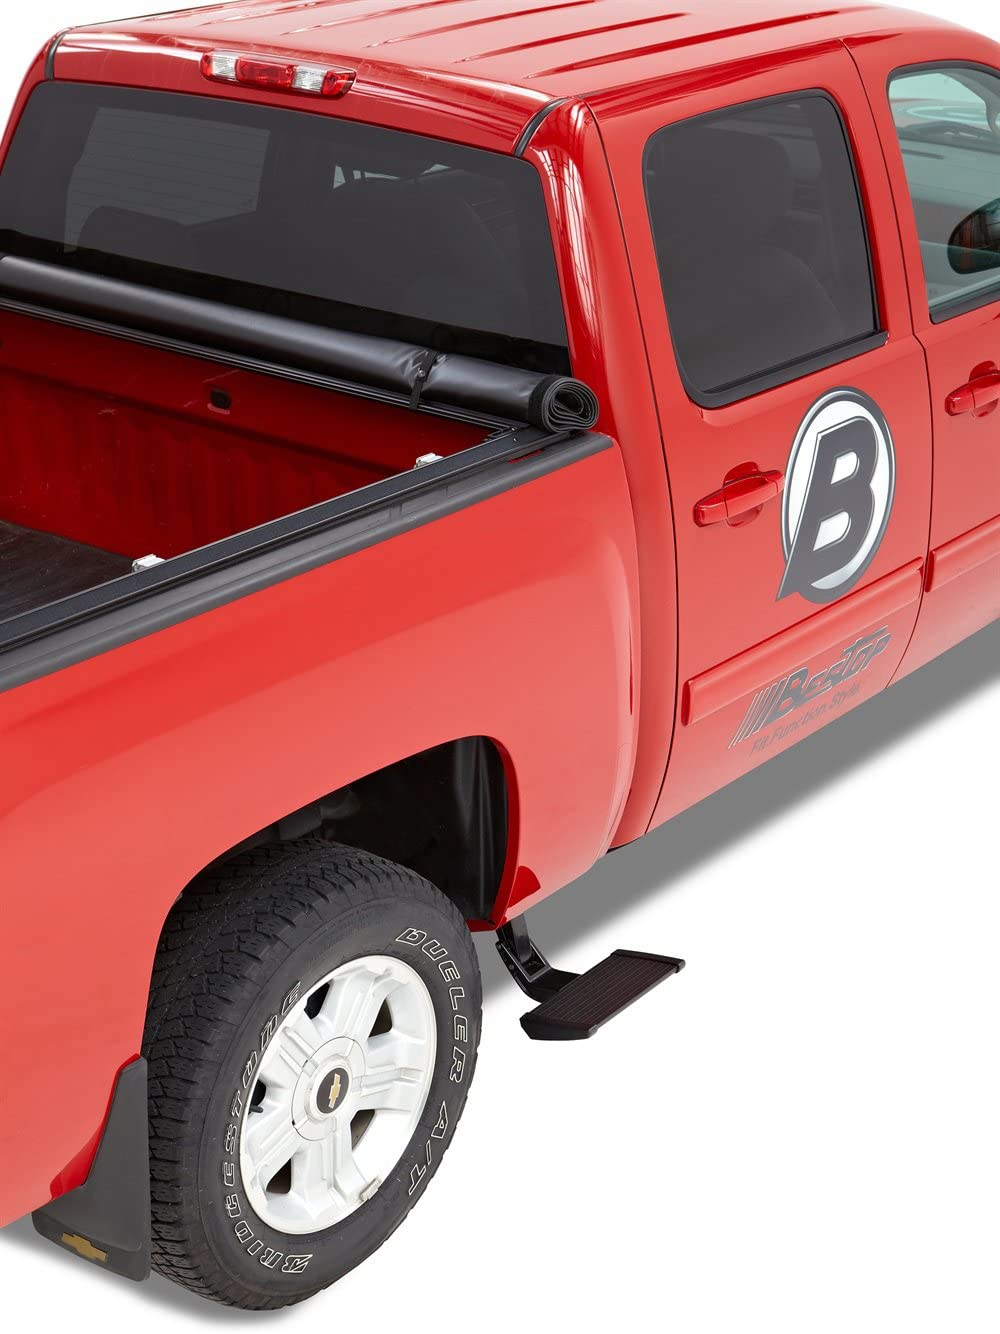 Bestop 75414-15 Side-Mounted Trekstep for 2014-2018 Ram 2500; fits passenger side only 6.3 and 8.0 beds